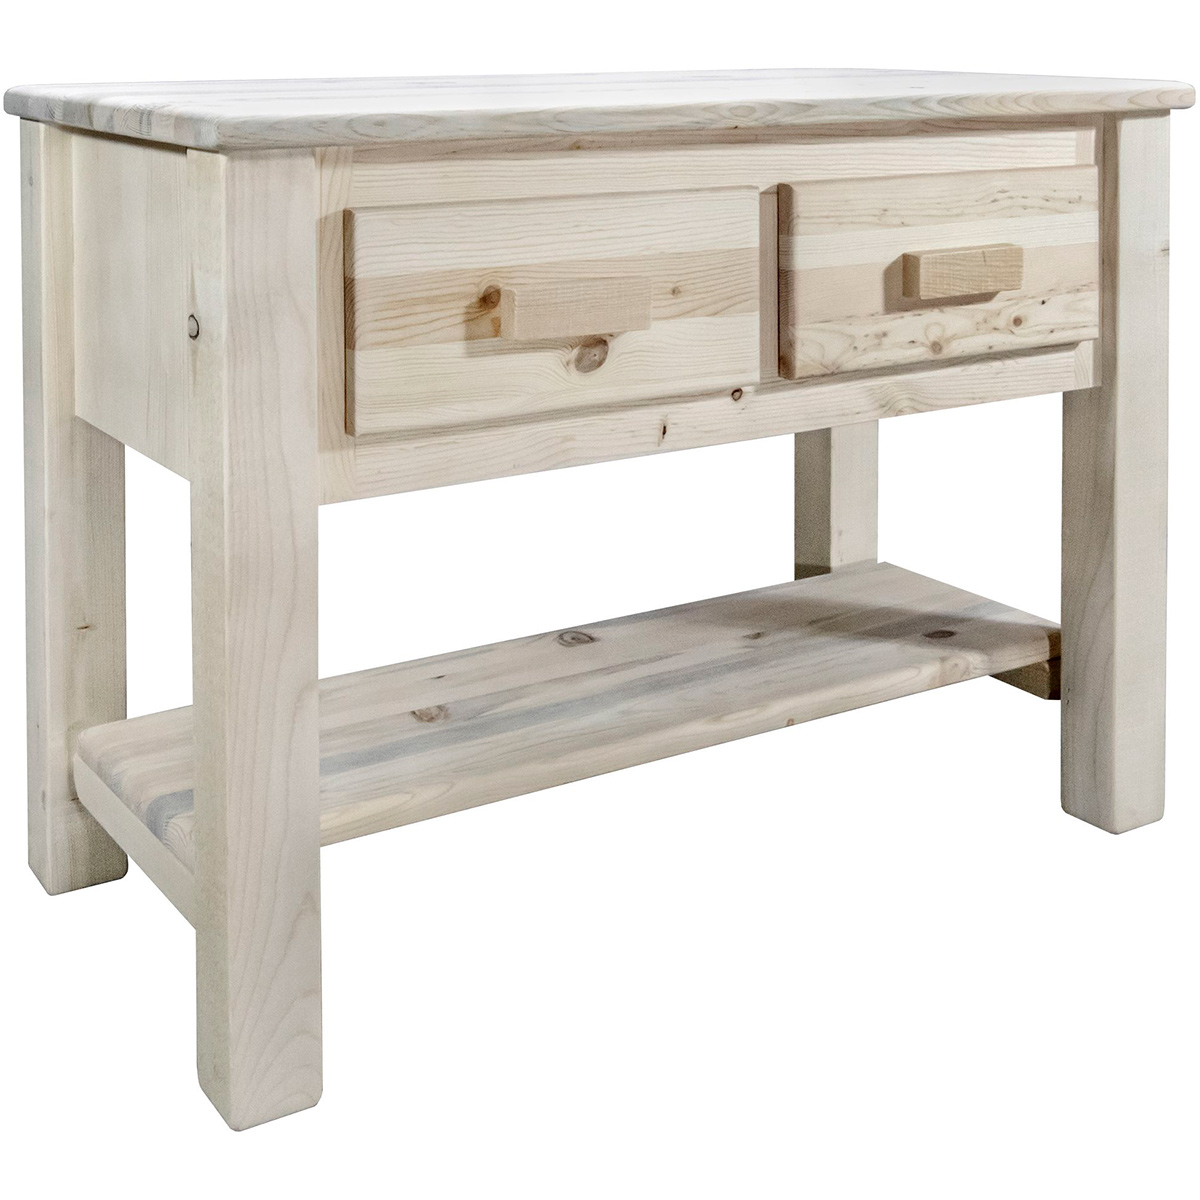 Ranchman's Console Table with 2 Drawers & Clear Lacquer Finish